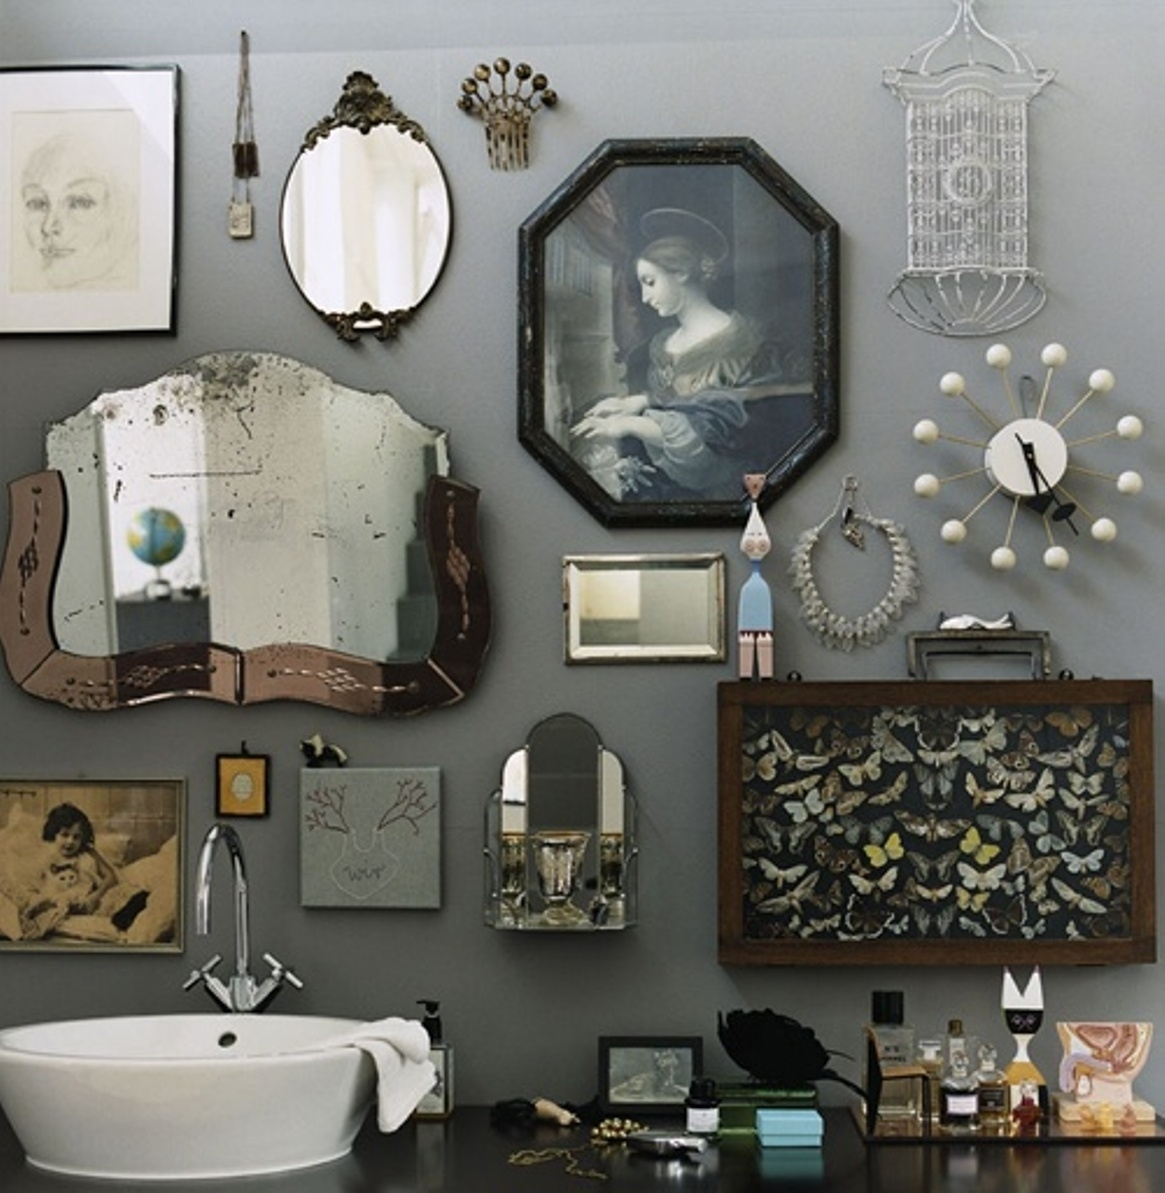 Charming Bathroom Wall Decor Inspirations — The Home Redesign With Best And Newest Wall Accents For Bathroom (View 6 of 15)